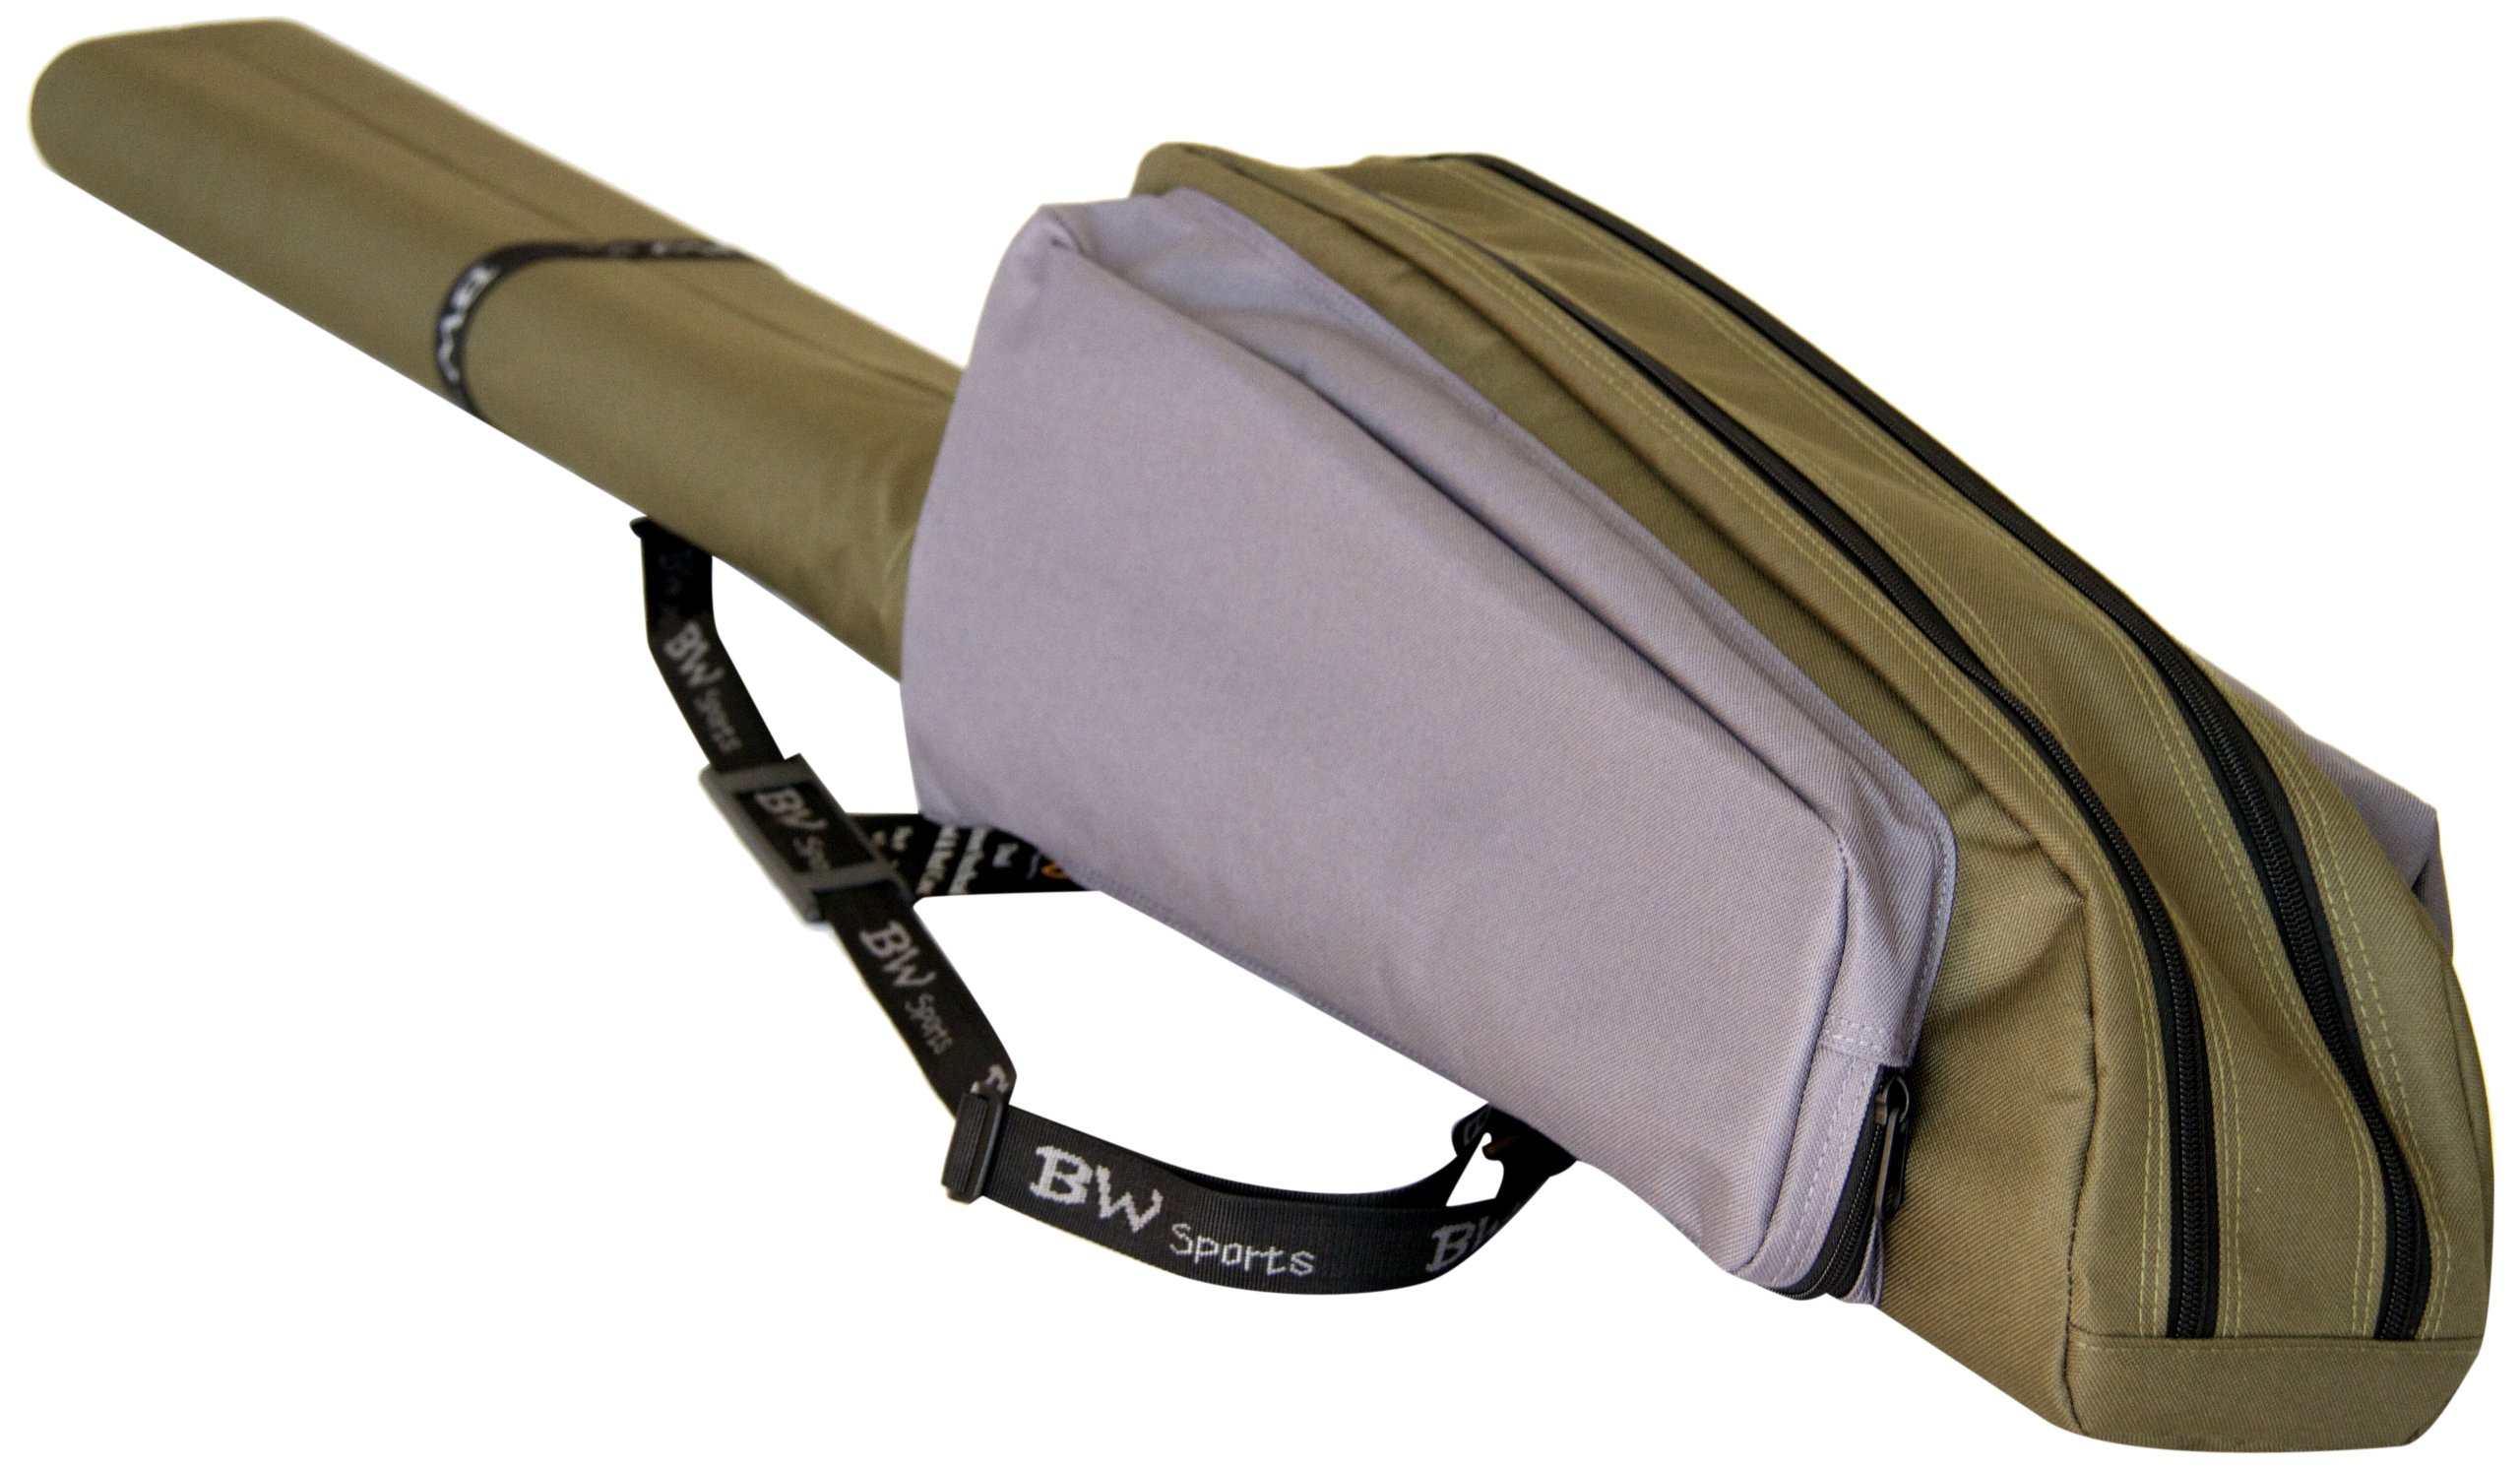 BW Sports Dual Spinning Rod and Reel Case for 9 Ft. Spinning Rods - RC 2090